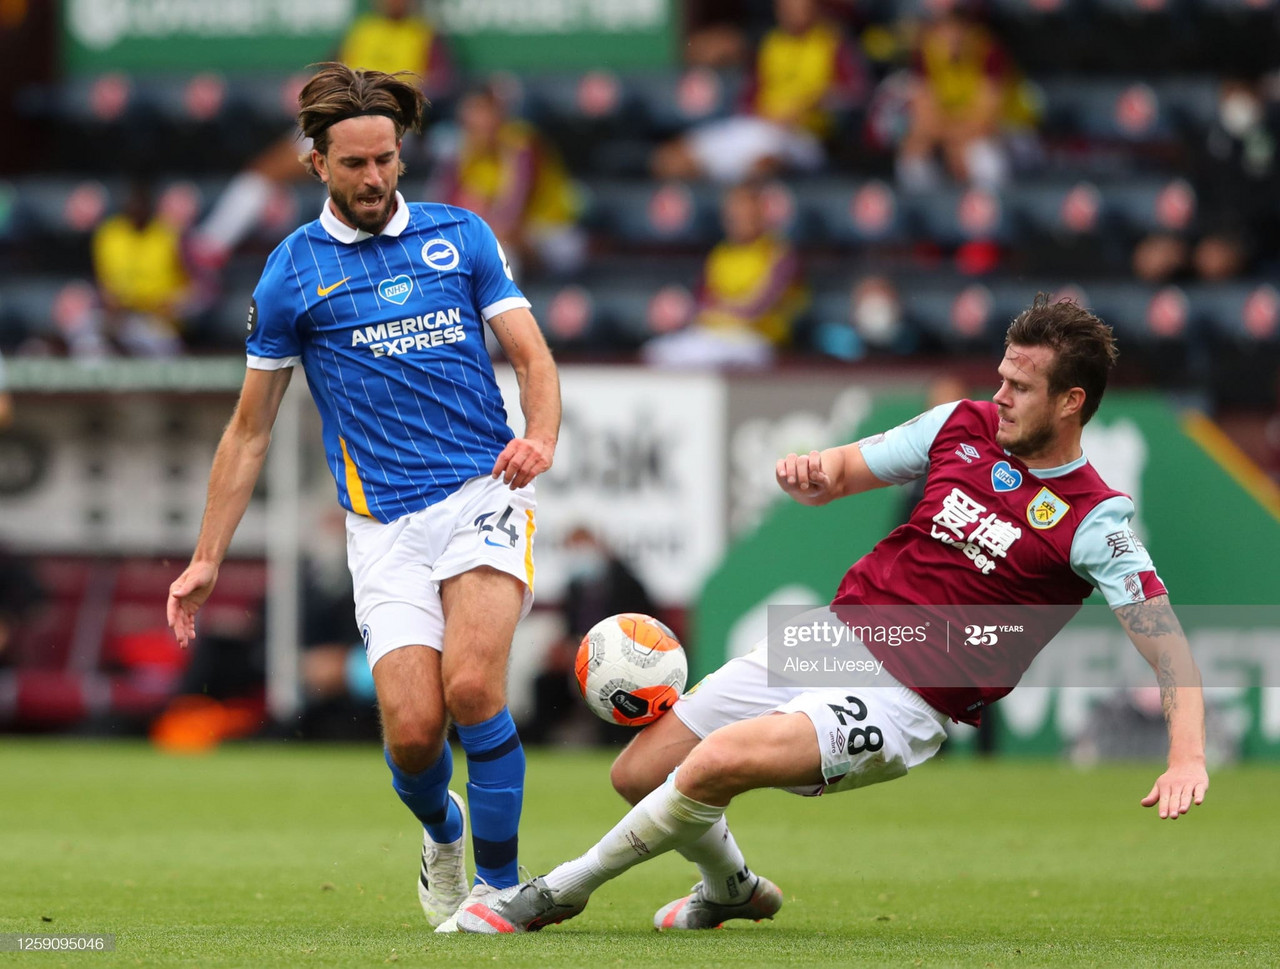 Brighton & Hove Albion vs Burnley Preview:Can Burnley get their first Premier League victory of the season?